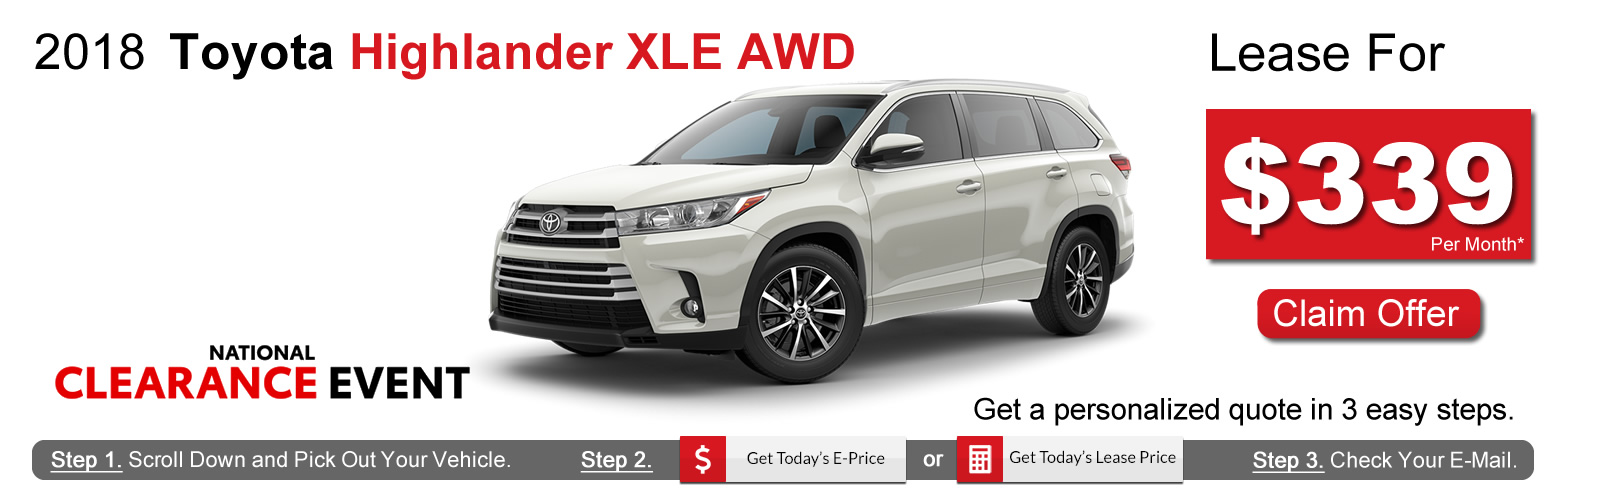 Toyota Highlander Lease >> Toyota Highlander Lease Deals Near Boston Ma